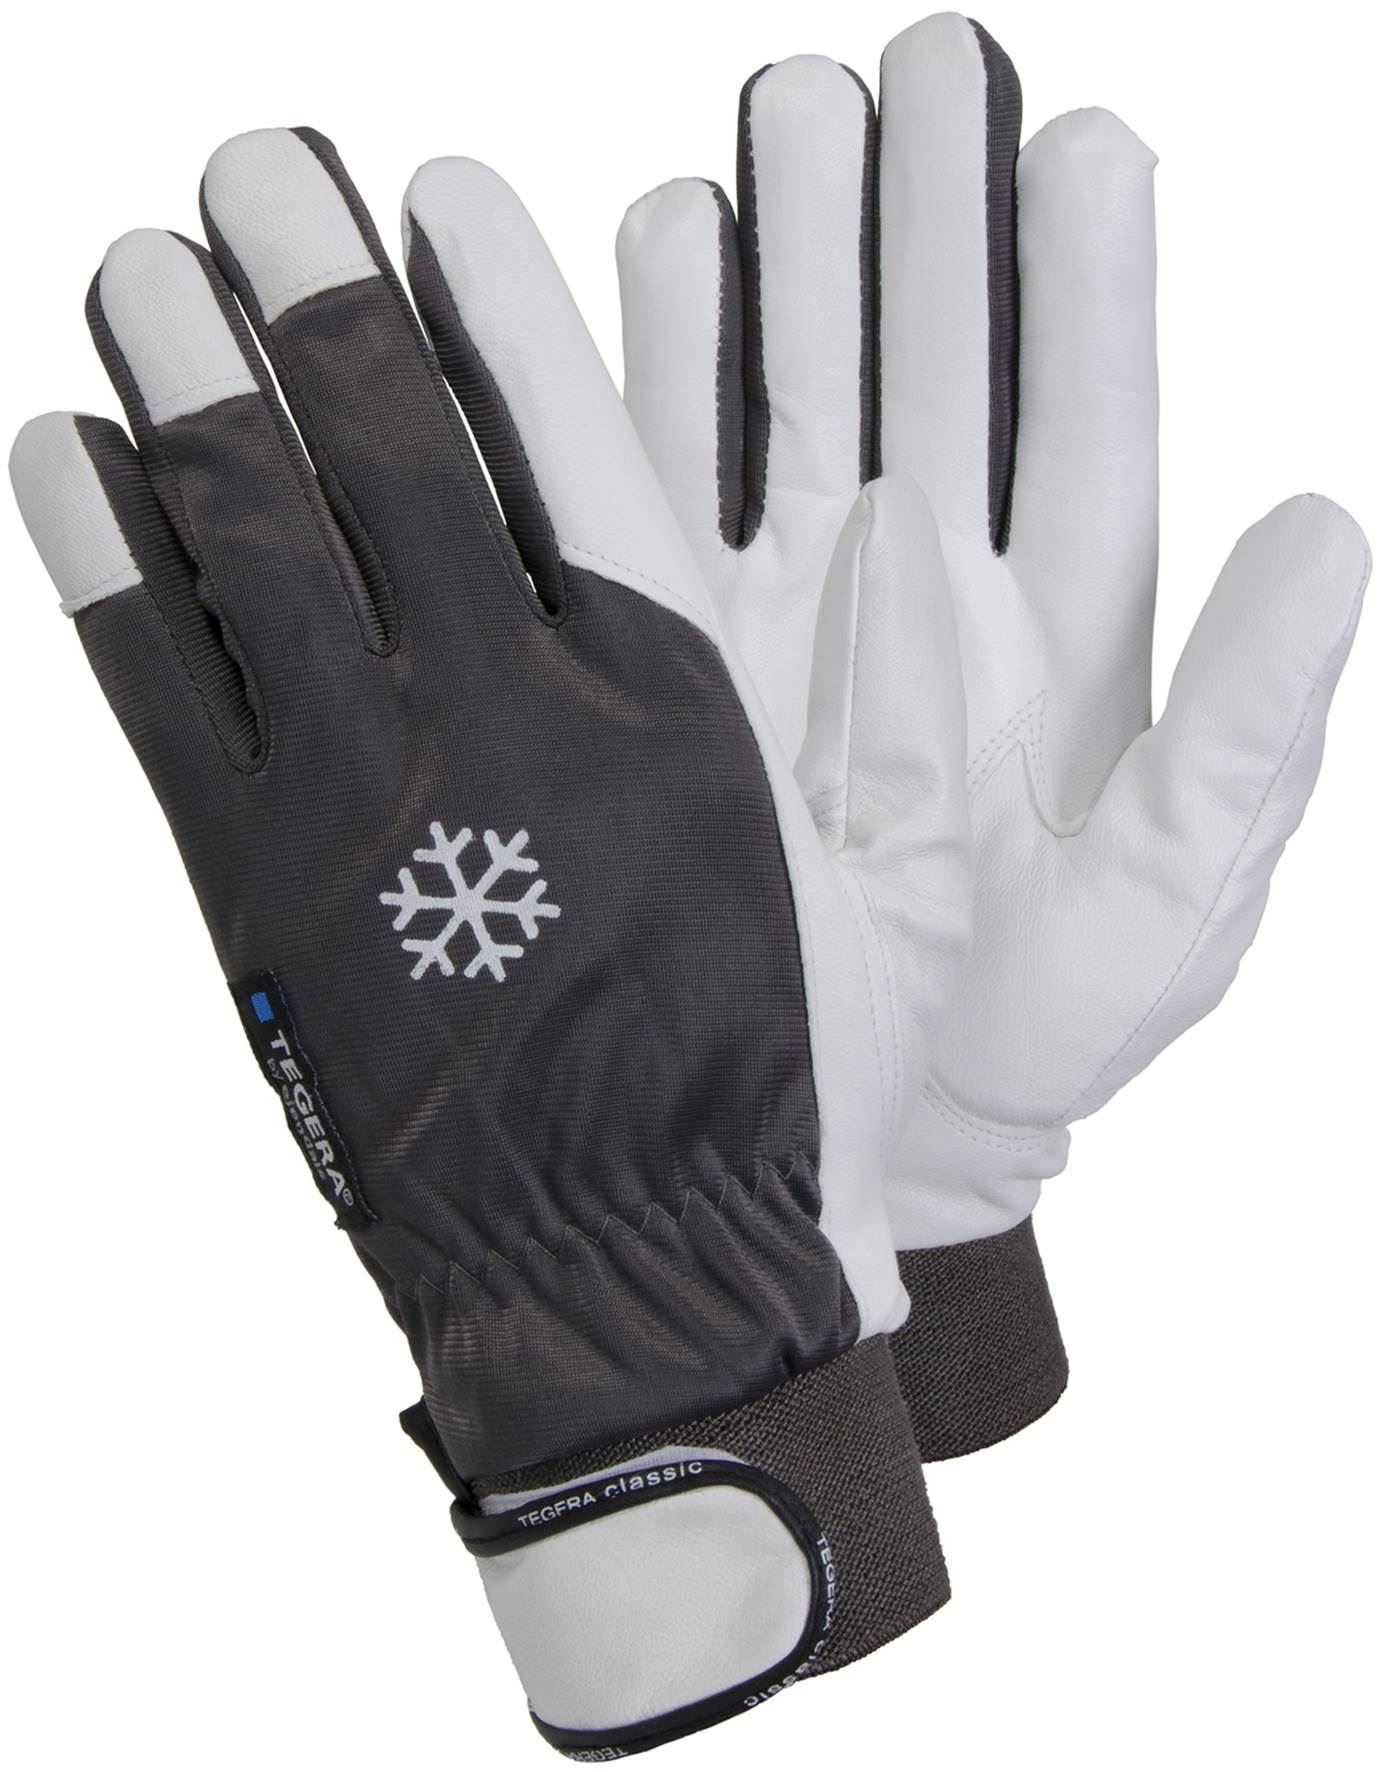 Thermal leather work gloves -